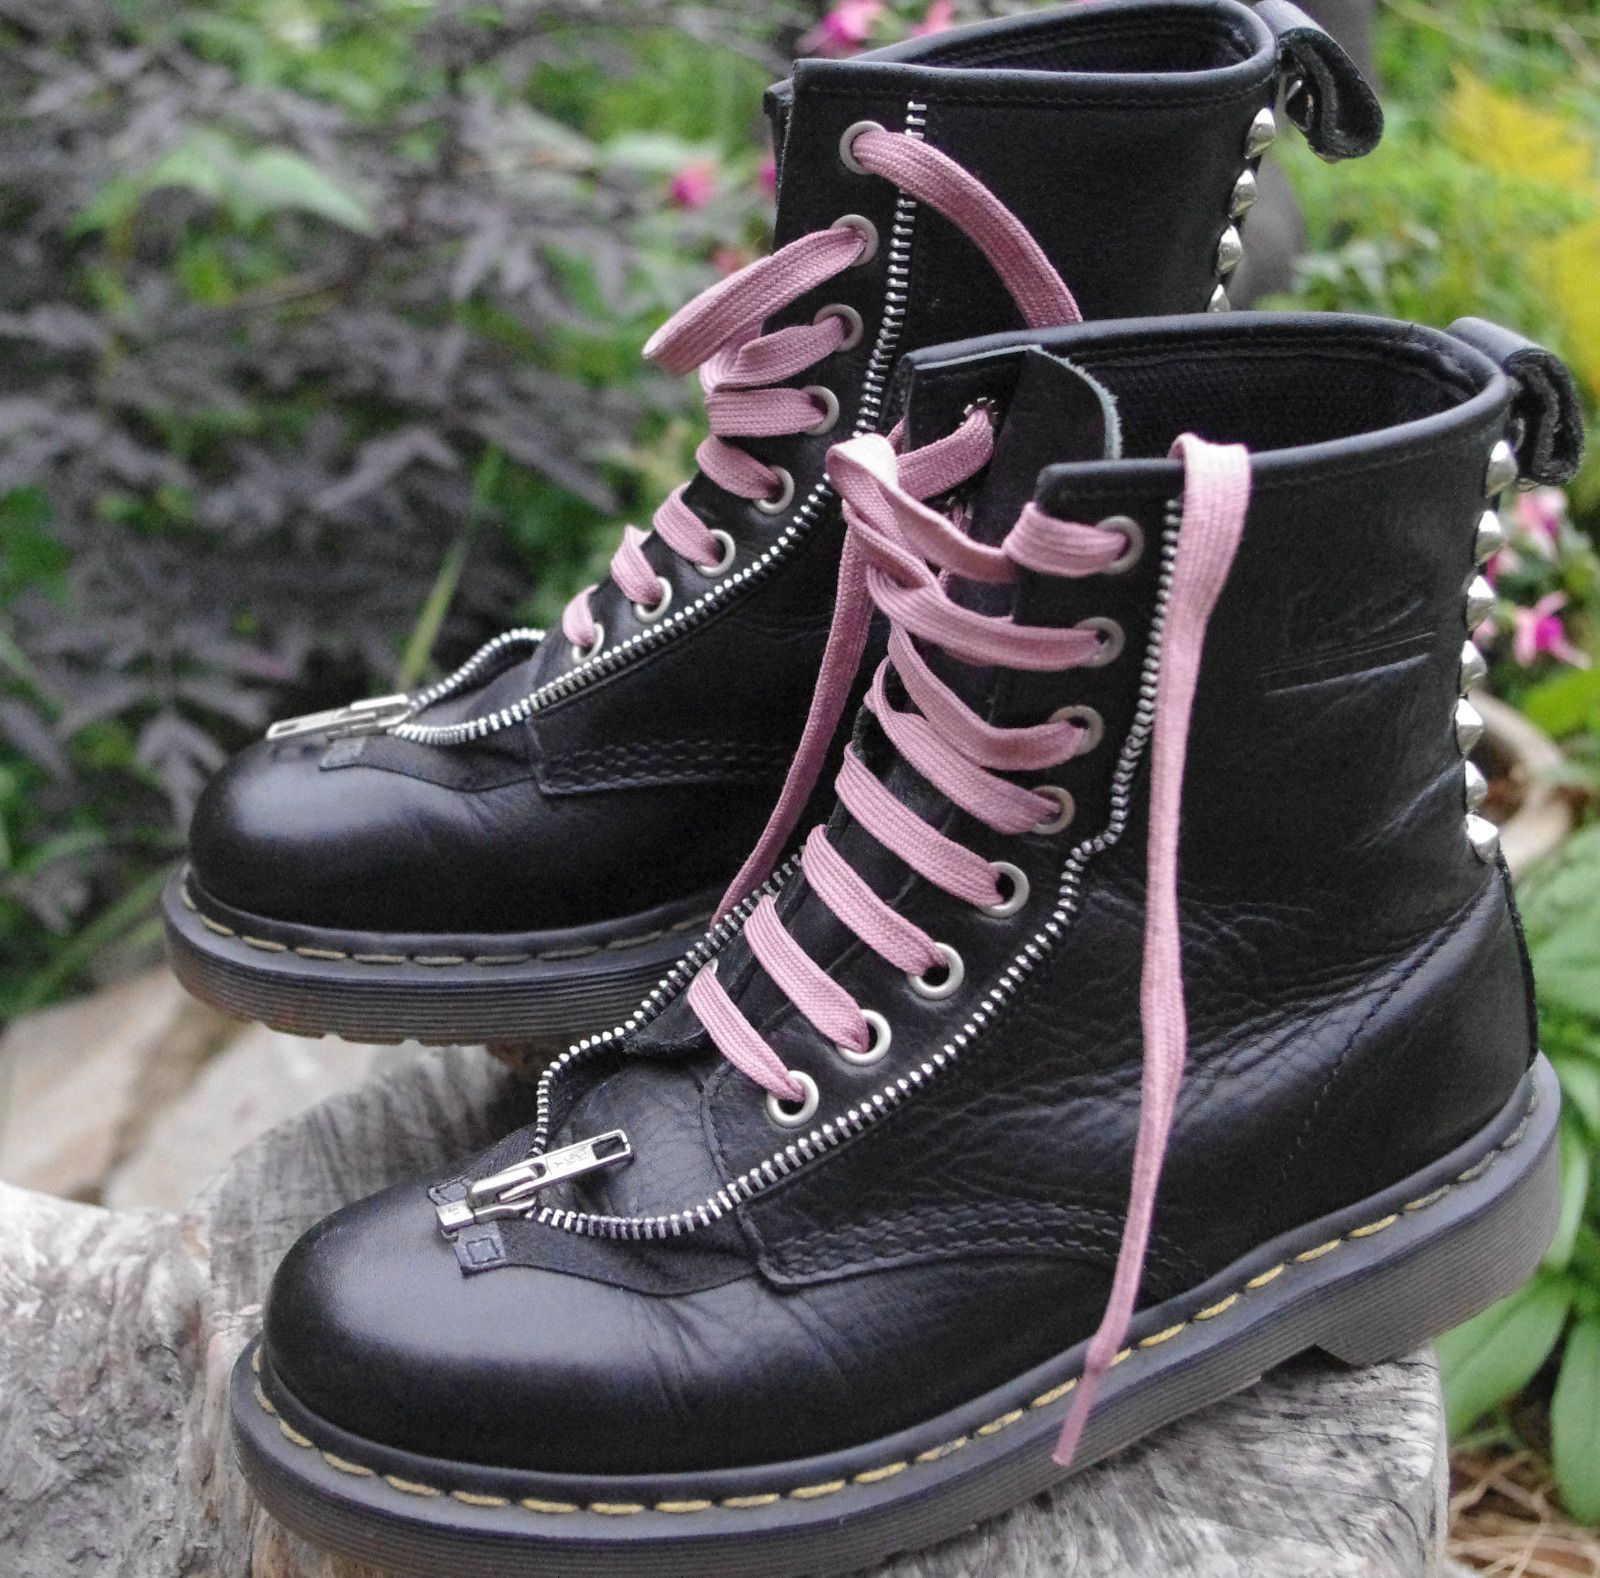 Rare black Dr Martens boots UK 5 EU 38 silver studs and zips VGC 8 hole  Docs DMs in Clothes, Shoes & Accessories, Women's Shoes, Boots